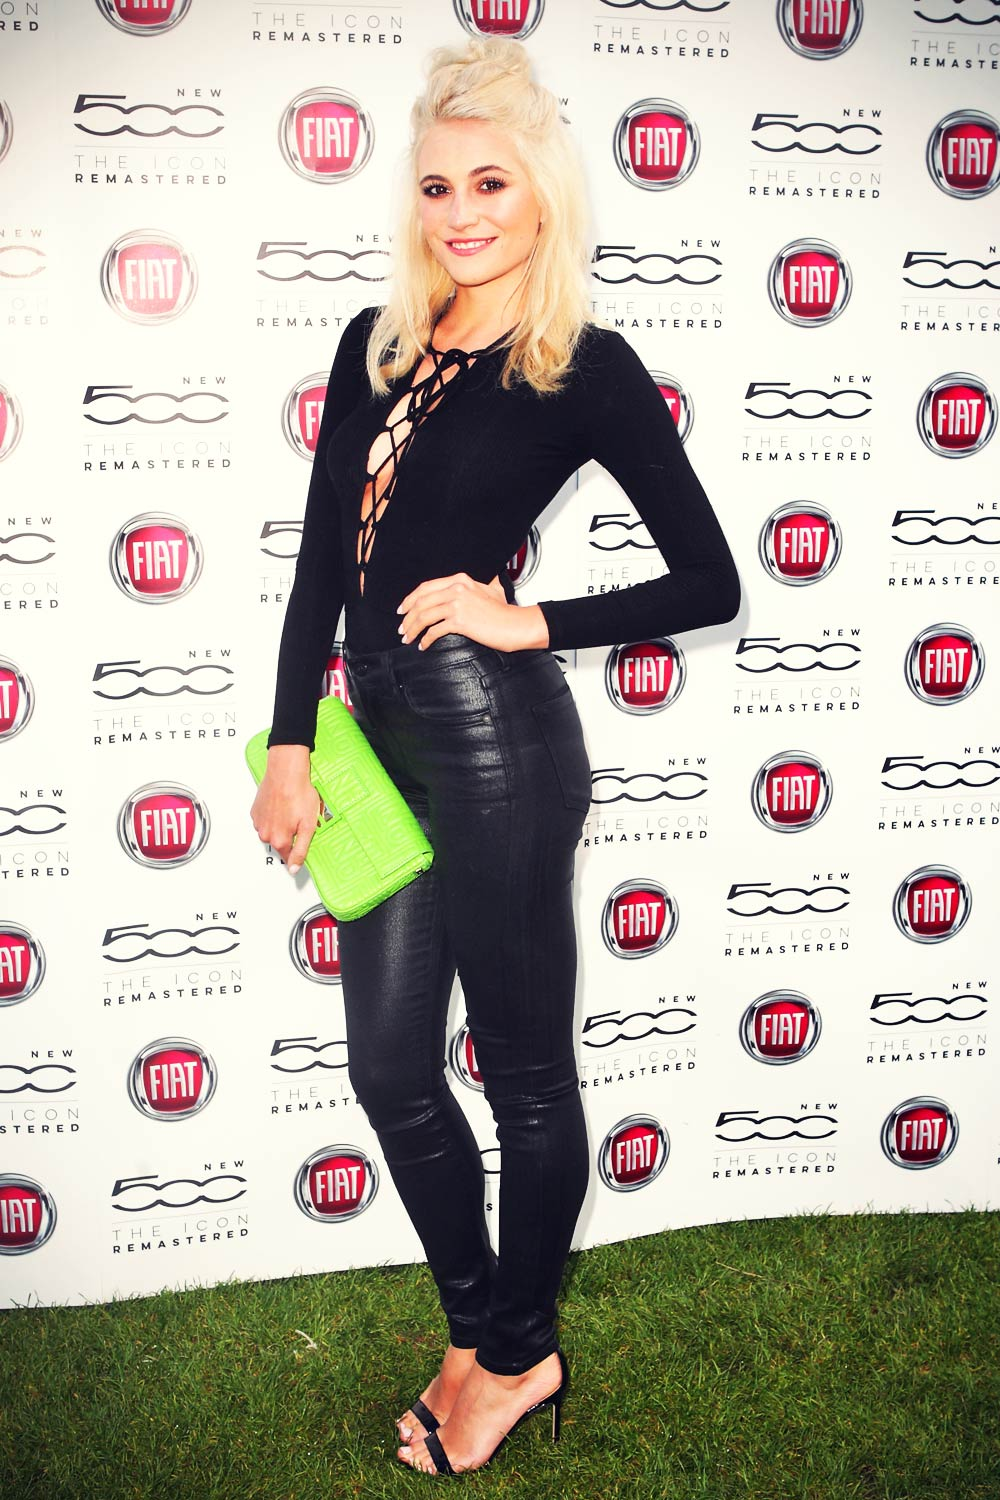 Pixie Lott attends launch of the new Fiat 500